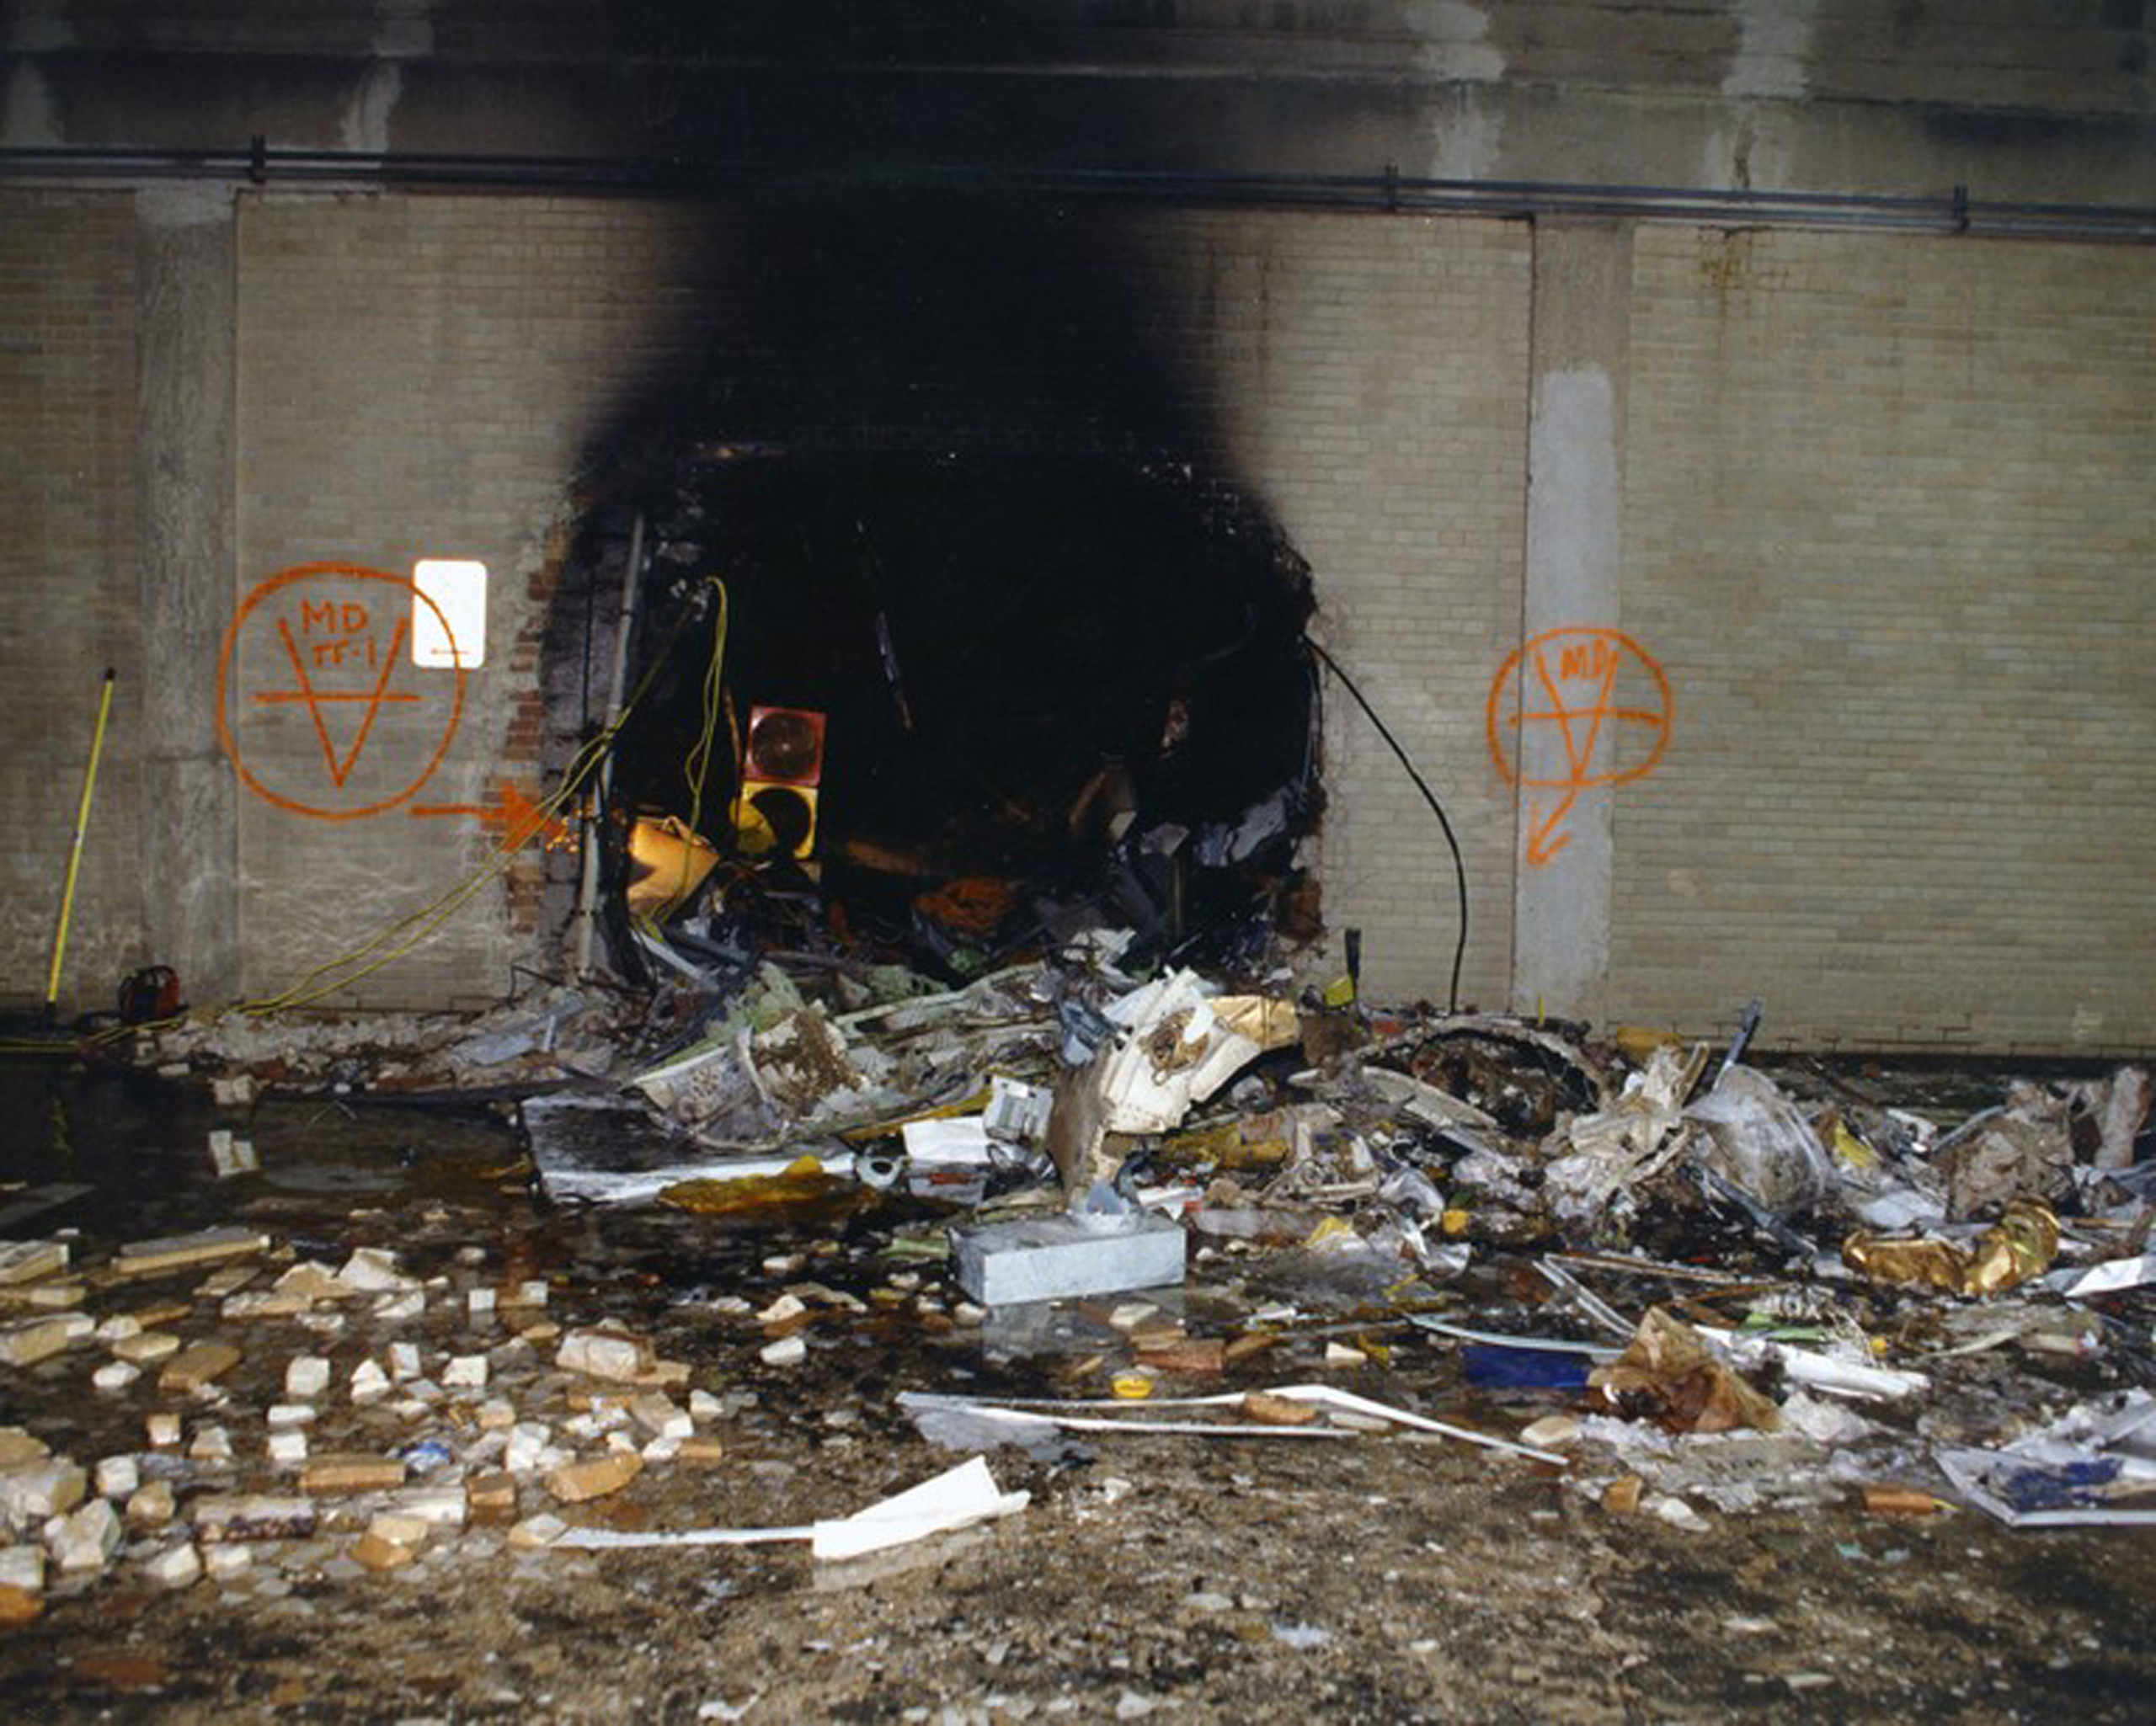 Pentagon Fbi Releases New Photos From 9 11 Attack Time